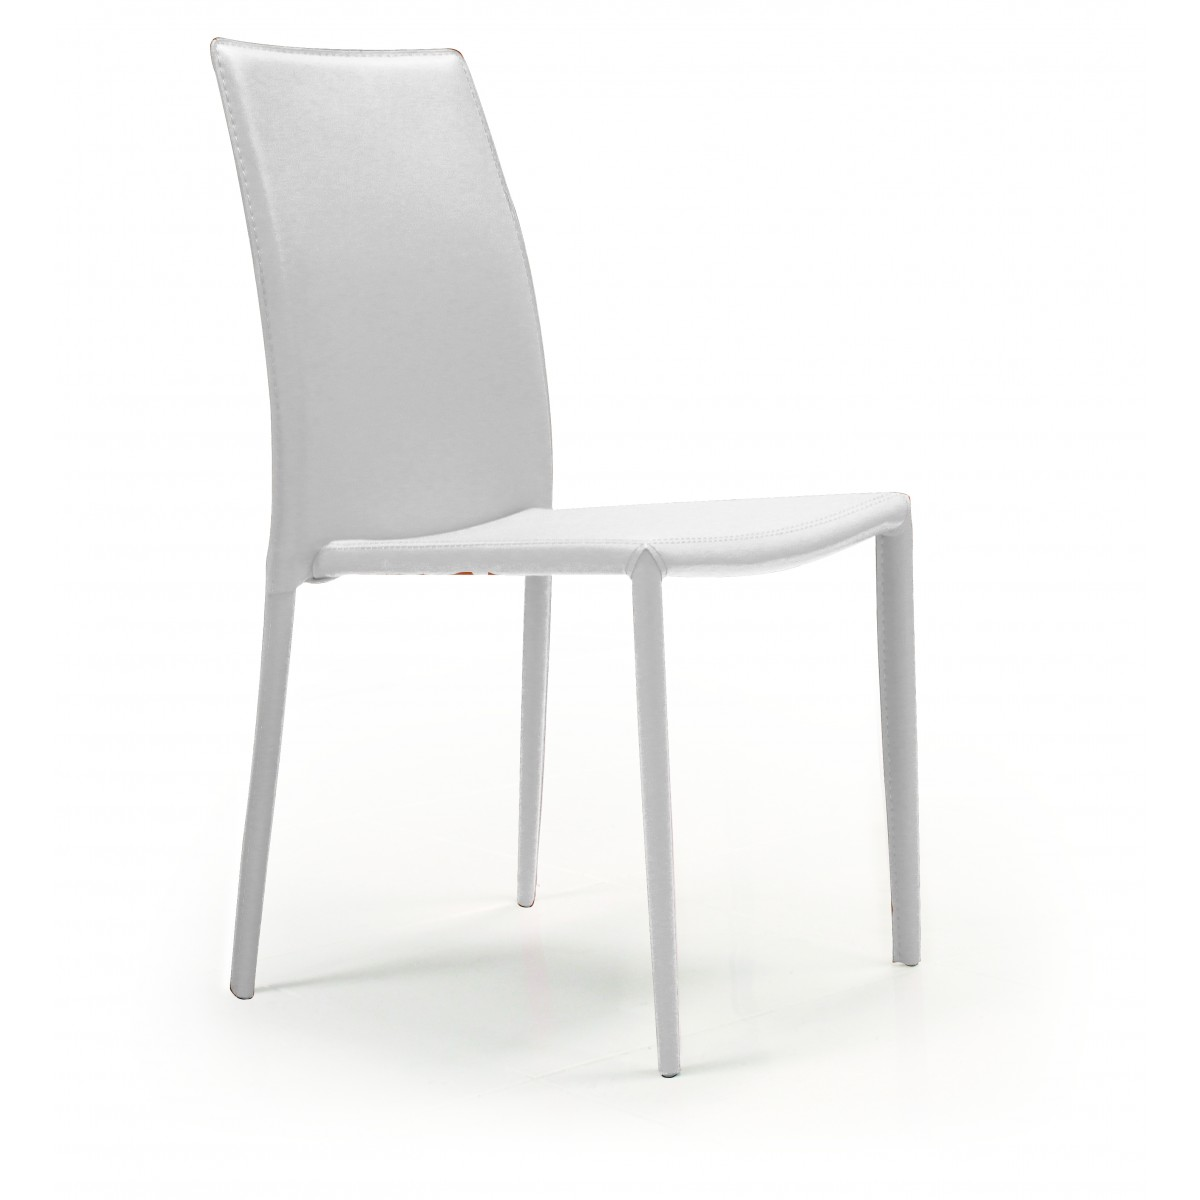 Orlando side dining chairs creative furniture creative dining sets modern dining sets dining room furniture contemporary dining room